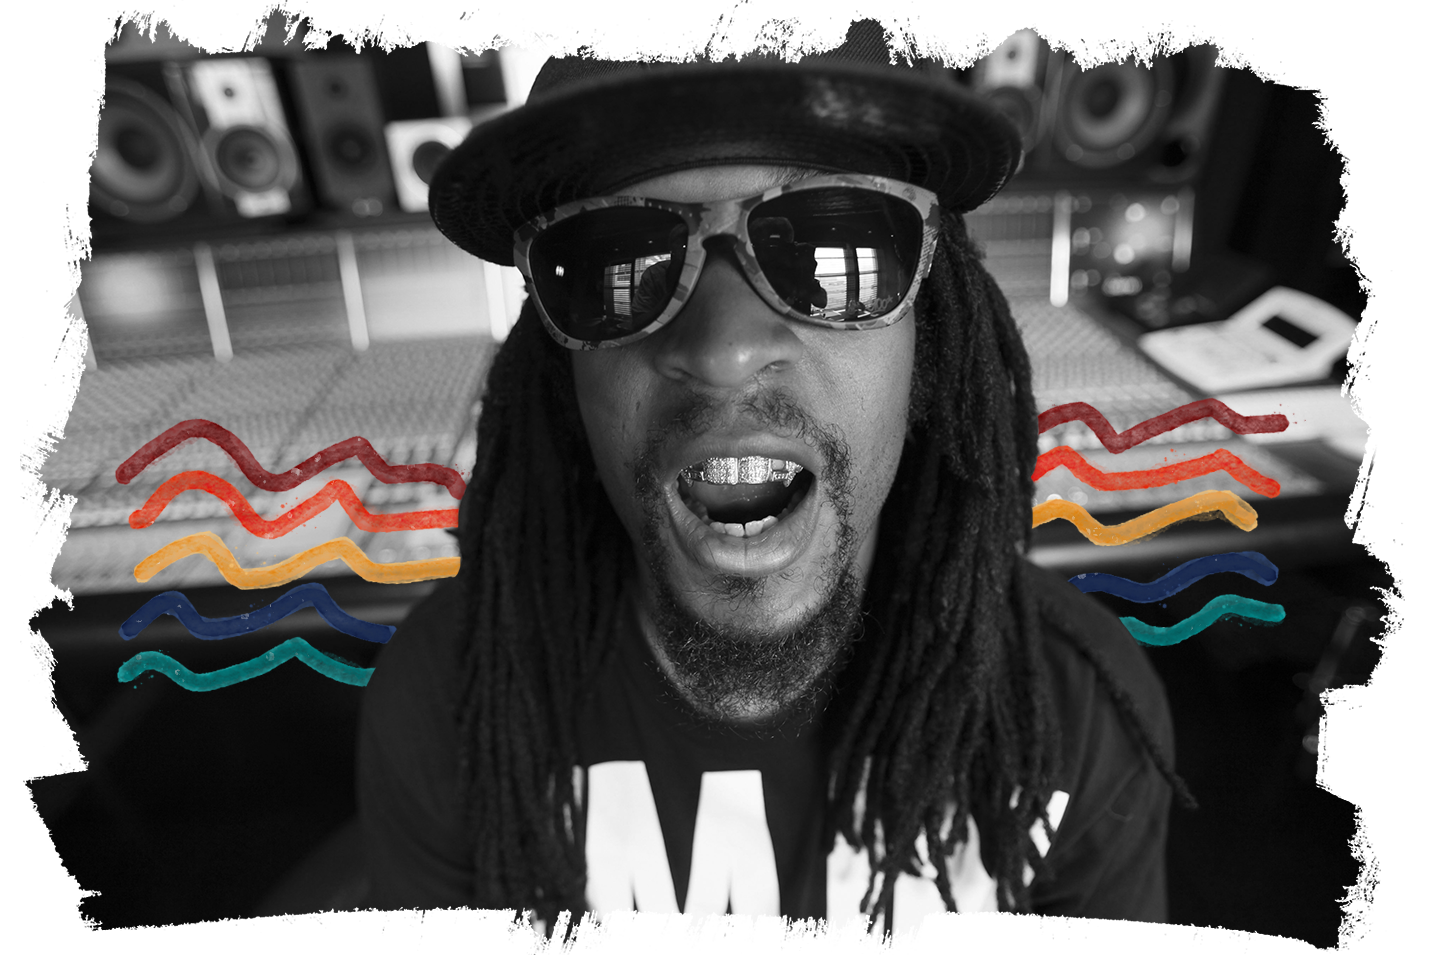 """Rapper Lil Jon, pictured in 2009. """"Get Low,"""" his single with the East Side Boyz and Ying Yang Twins, went all the way to No. 2 on the Billboard Hot 100."""